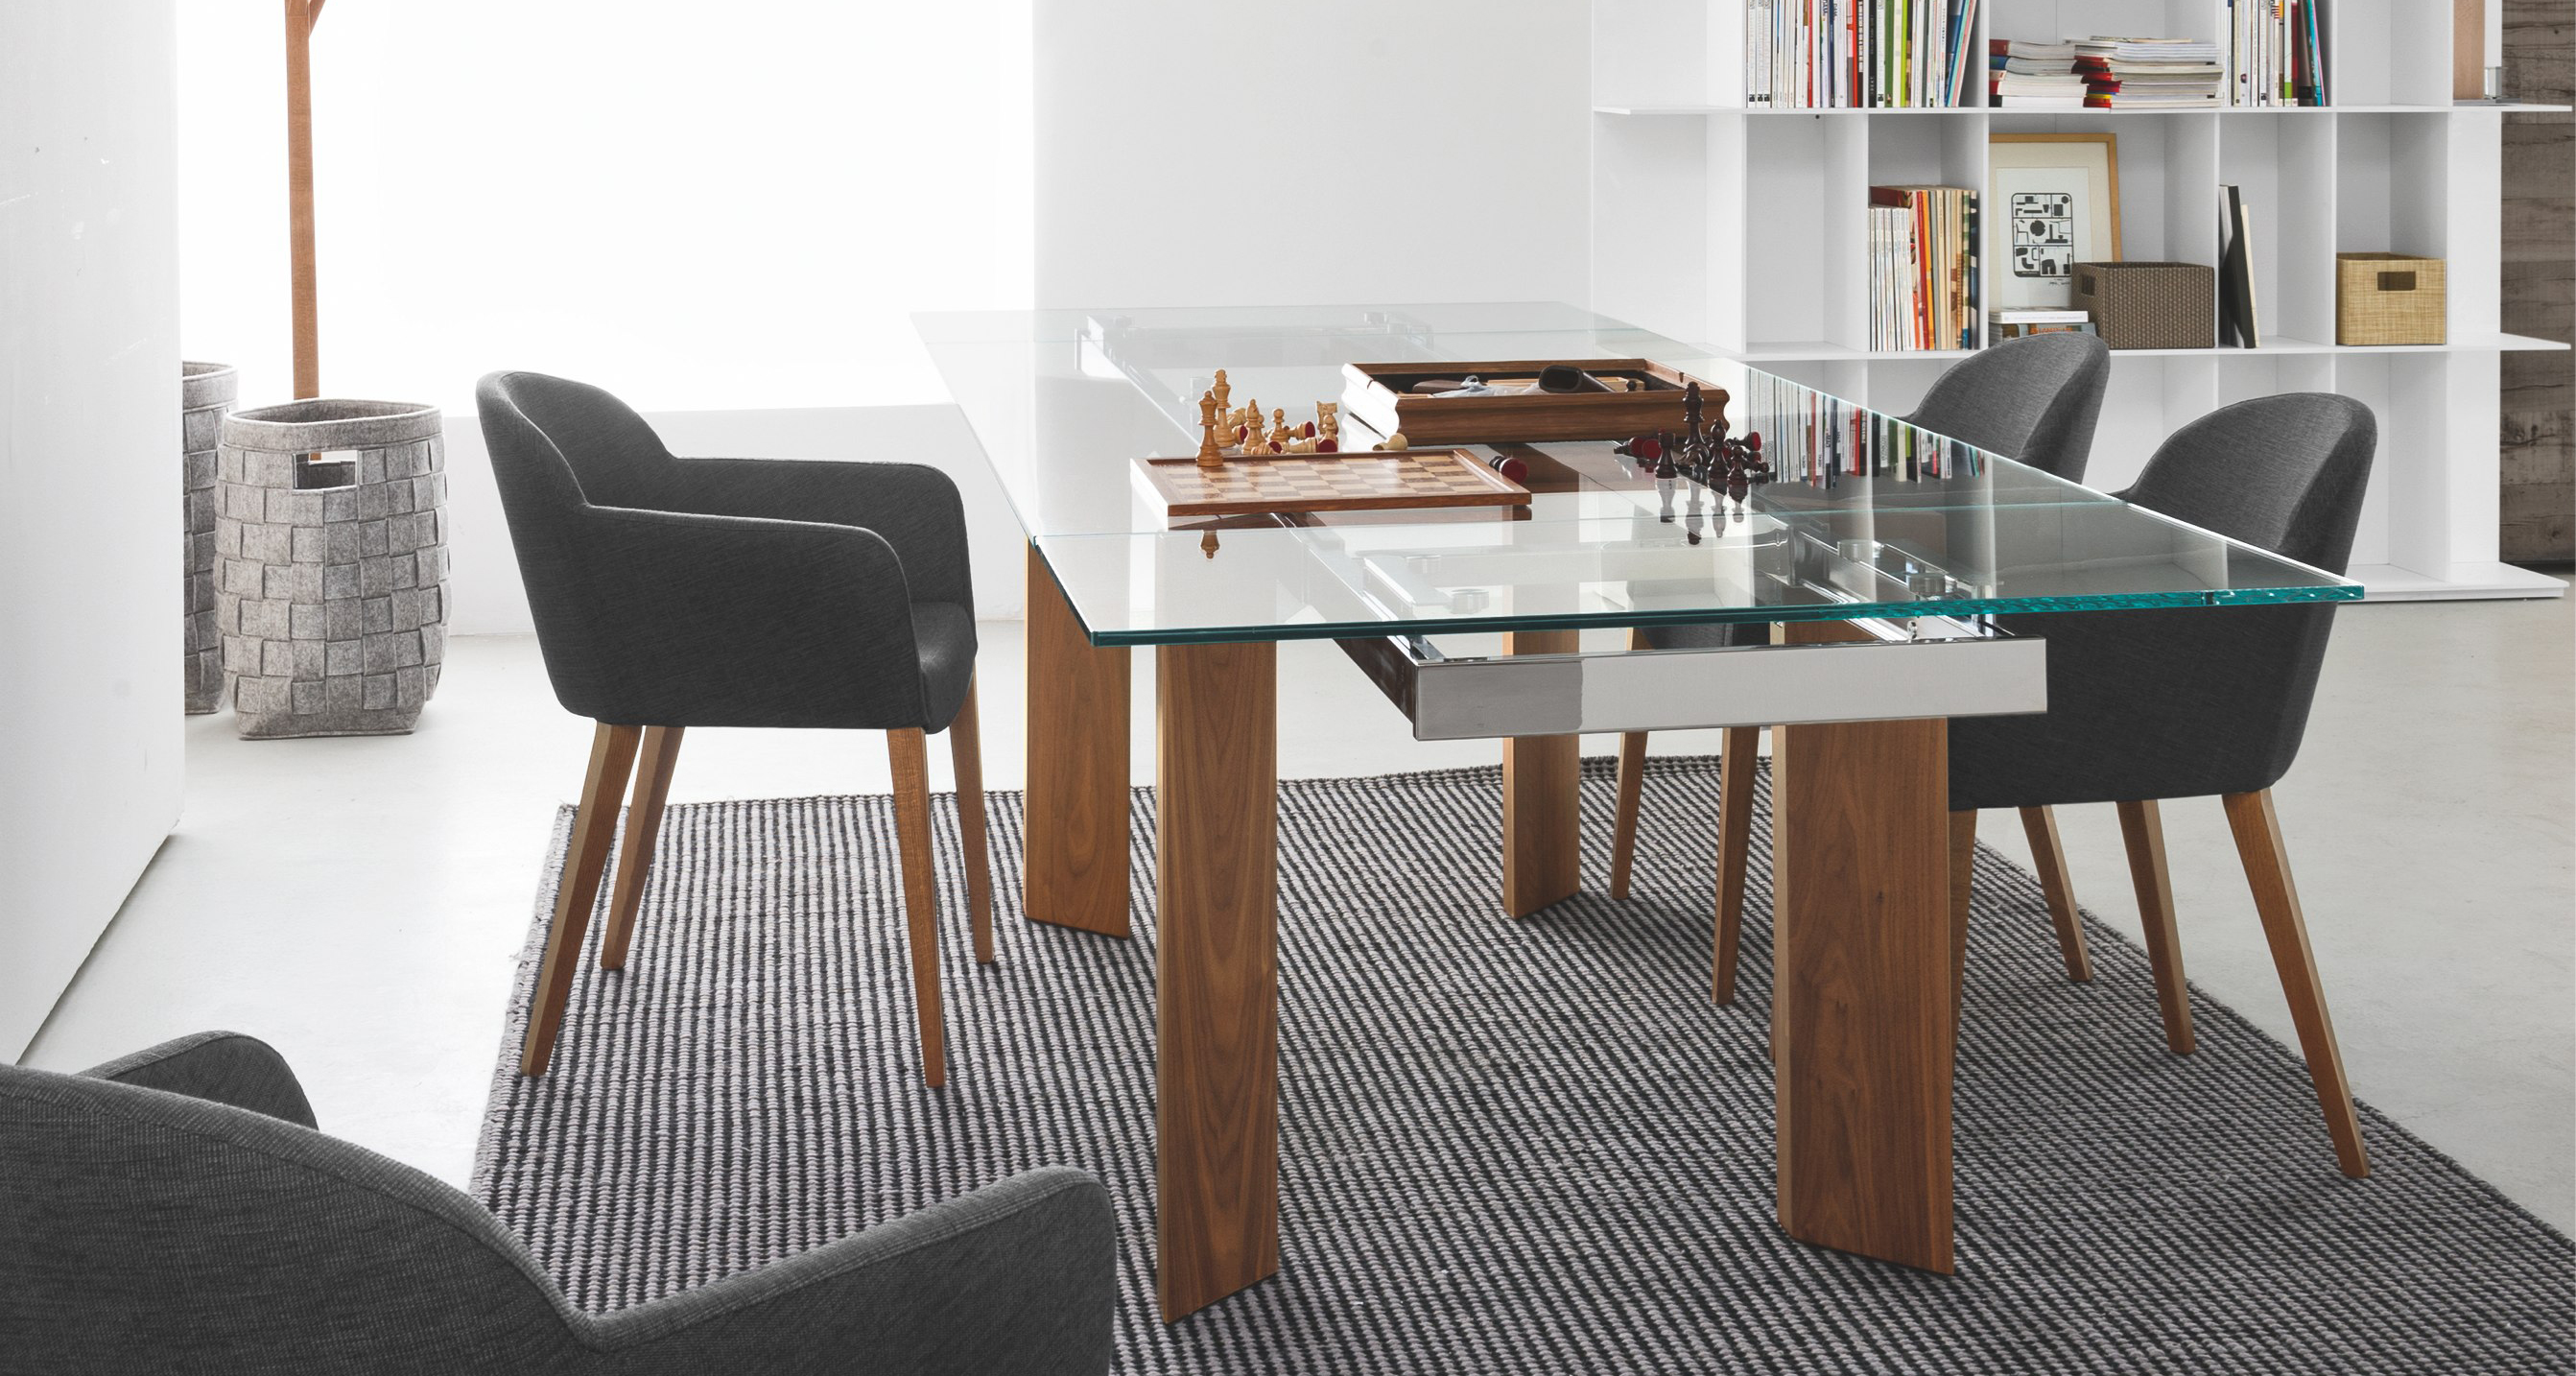 Calligaris Tower Modern Extendable Glass Dining Table  : towercs4057 rlgtrcs1110c24 from calligaristoronto.ca size 2685 x 1434 jpeg 2004kB